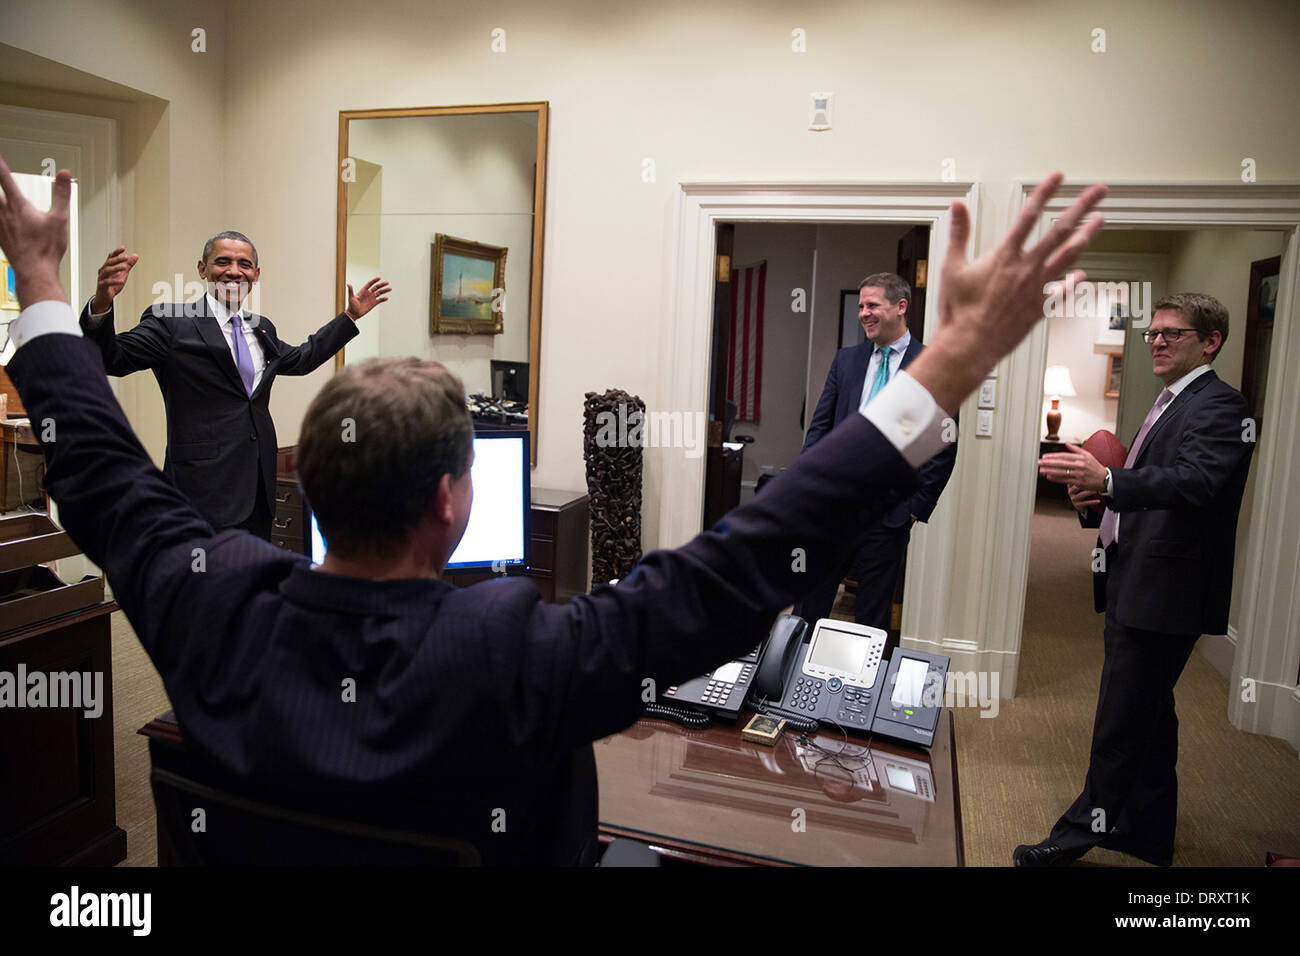 US President Barack Obama celebrates with Press Secretary Jay Carney in the Outer Oval Office following the Senate vote on the federal government shutdown and debt ceiling October 16, 2013 in Washington, DC. Trip Director Marvin Nicholson and Senior Advisor Dan Pfeiffer watch. - Stock Image